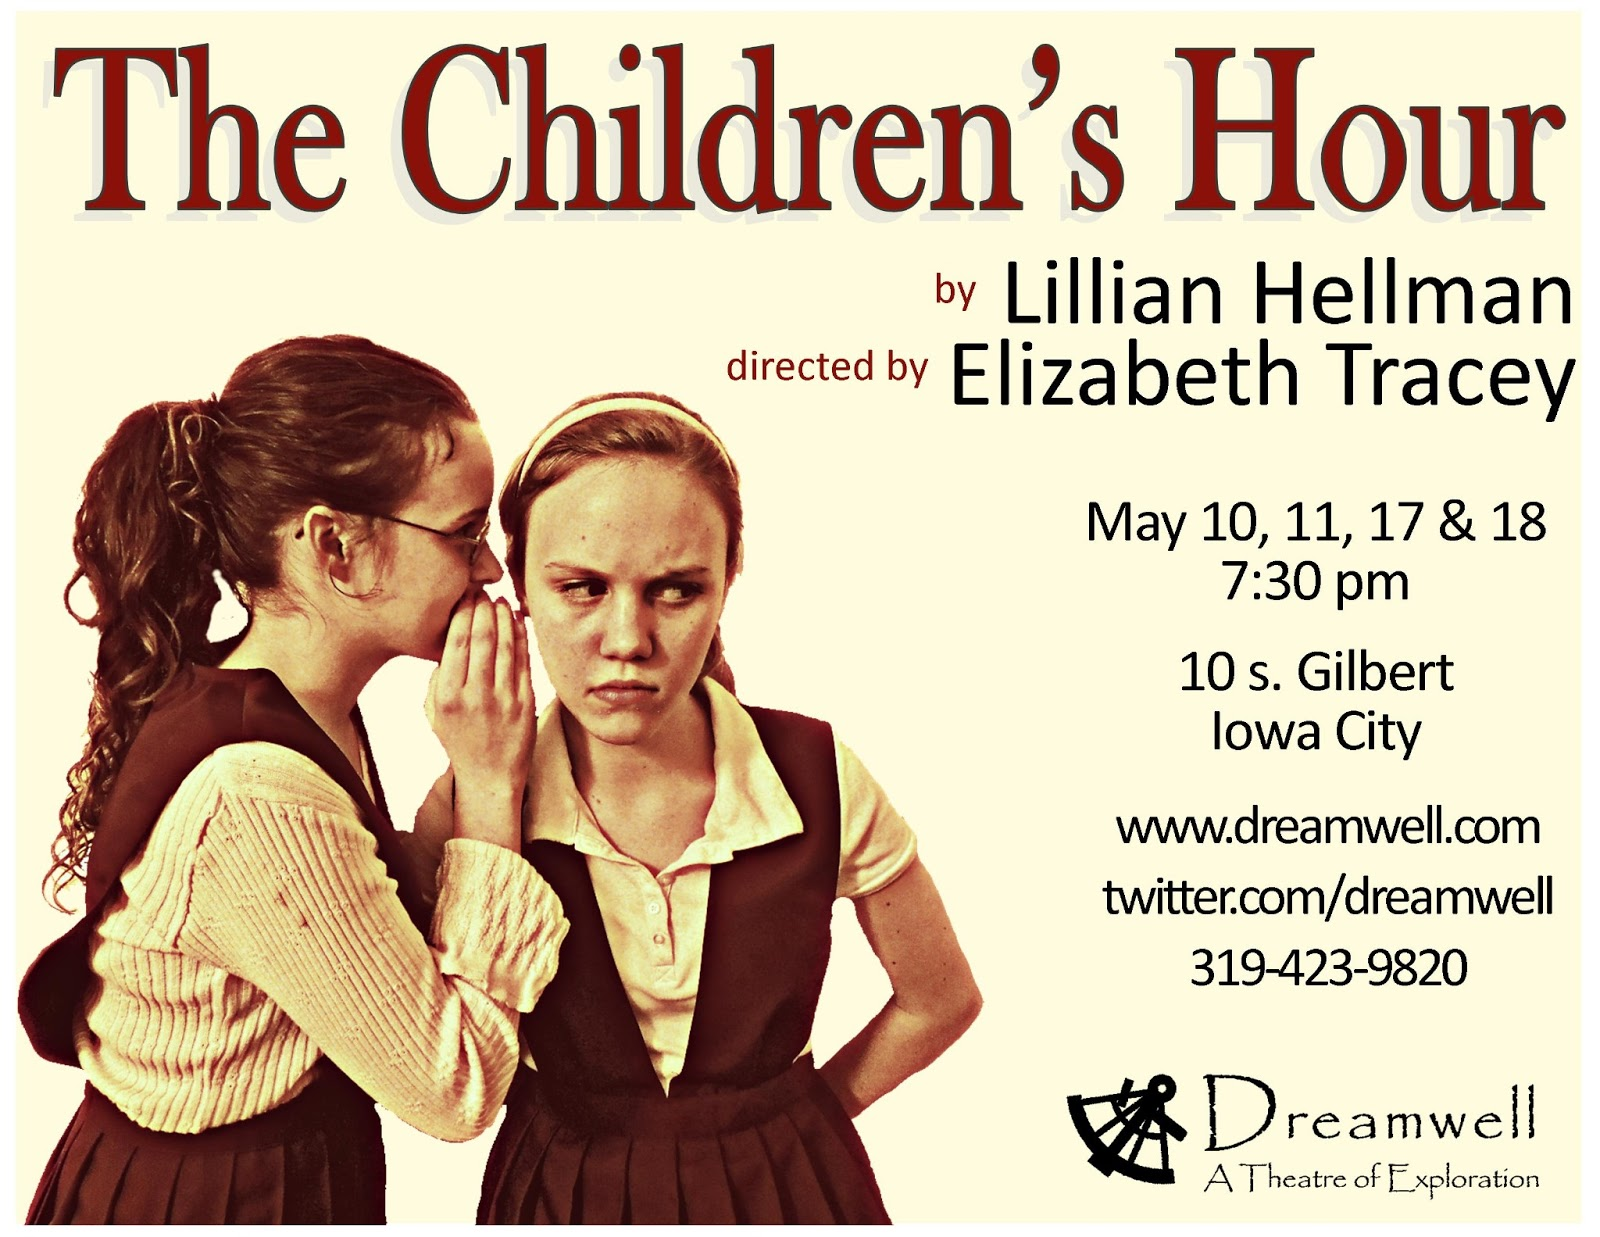 "the children s hour by lillian hellman ""between the dark and the daylightcomes a pause known as the children's hour"" lillian hellman's powerful debut drama from 1934 was a pulitzer prize finalist and is based on startling actual events."